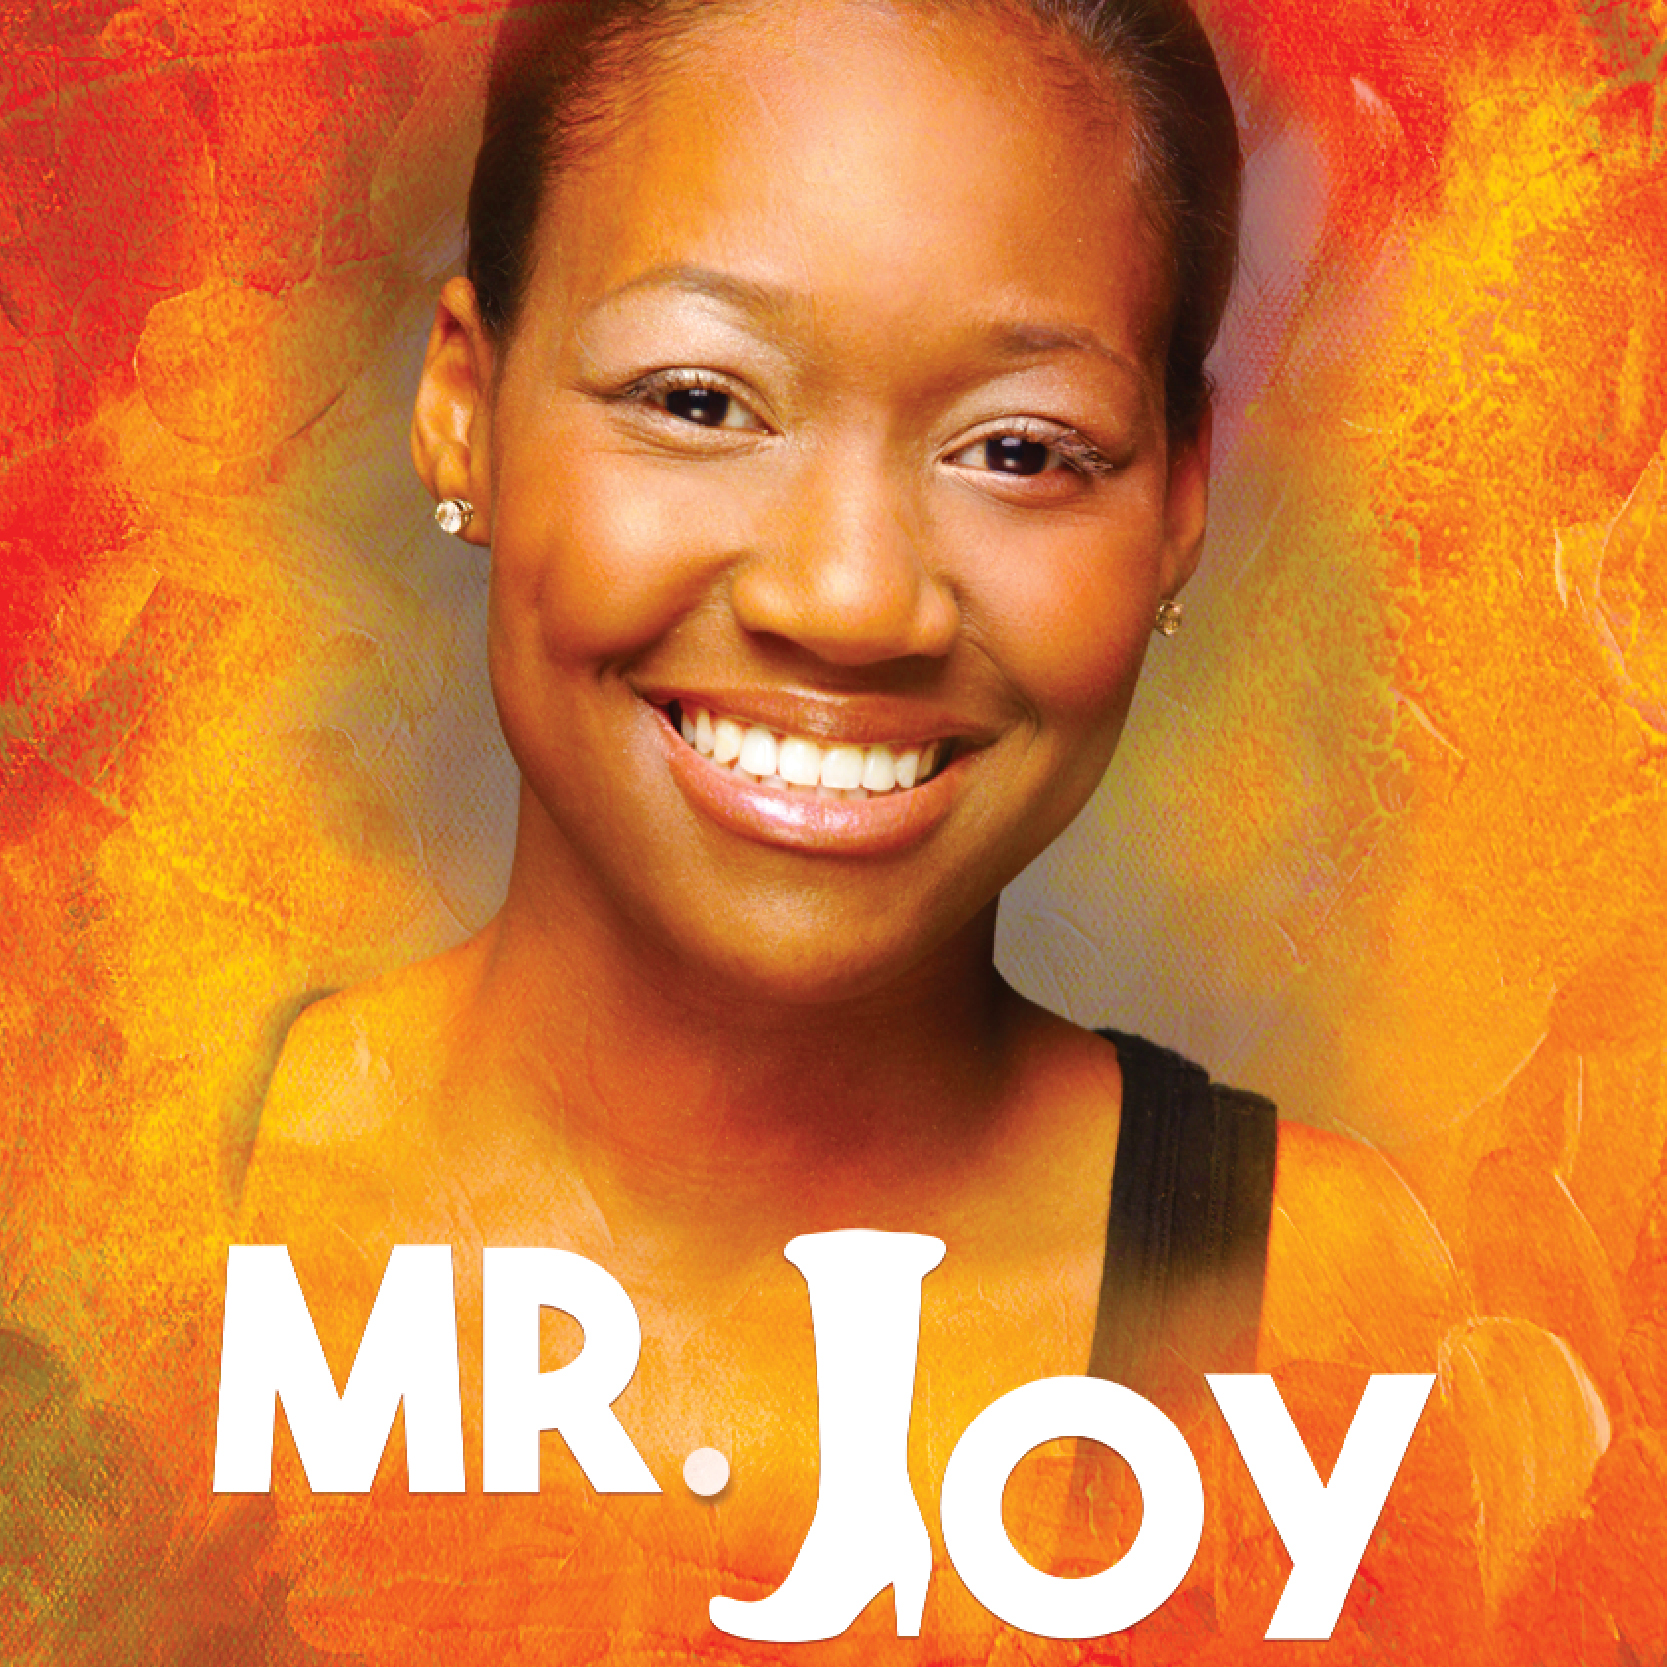 mr. joy-new.jpg